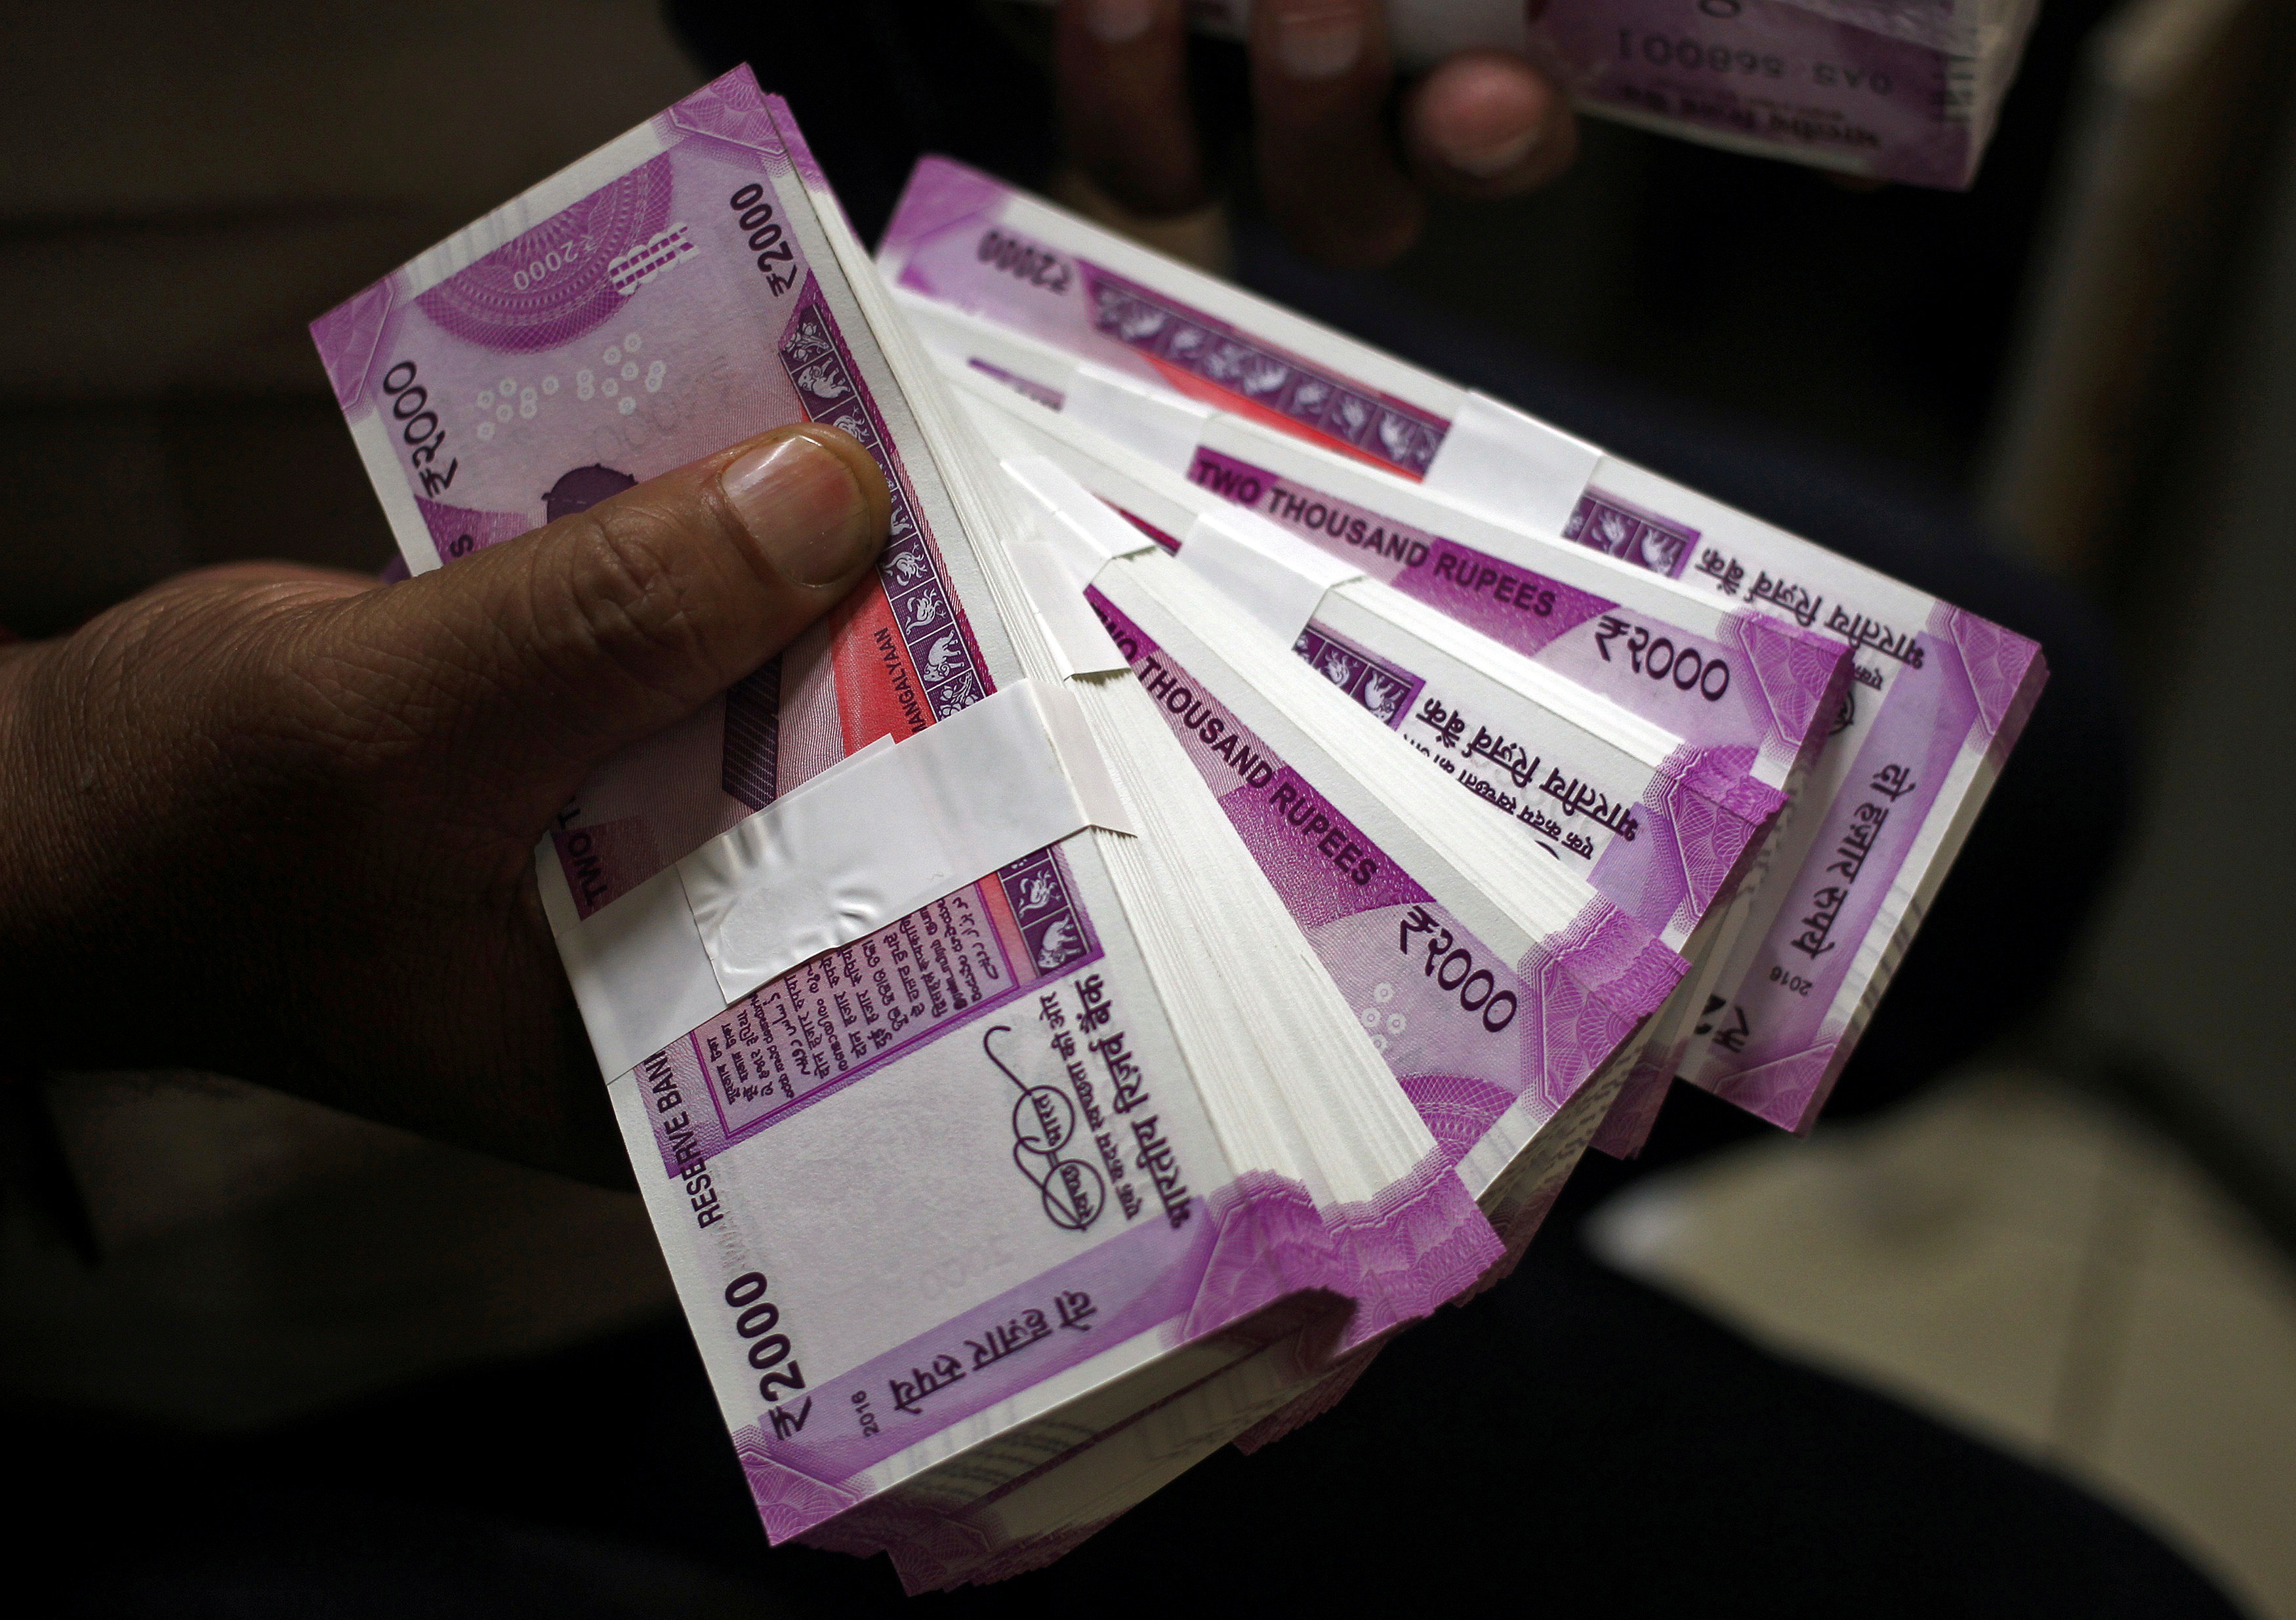 India's foreign direct investment inflows hit record $60.1 billion in 2016-17